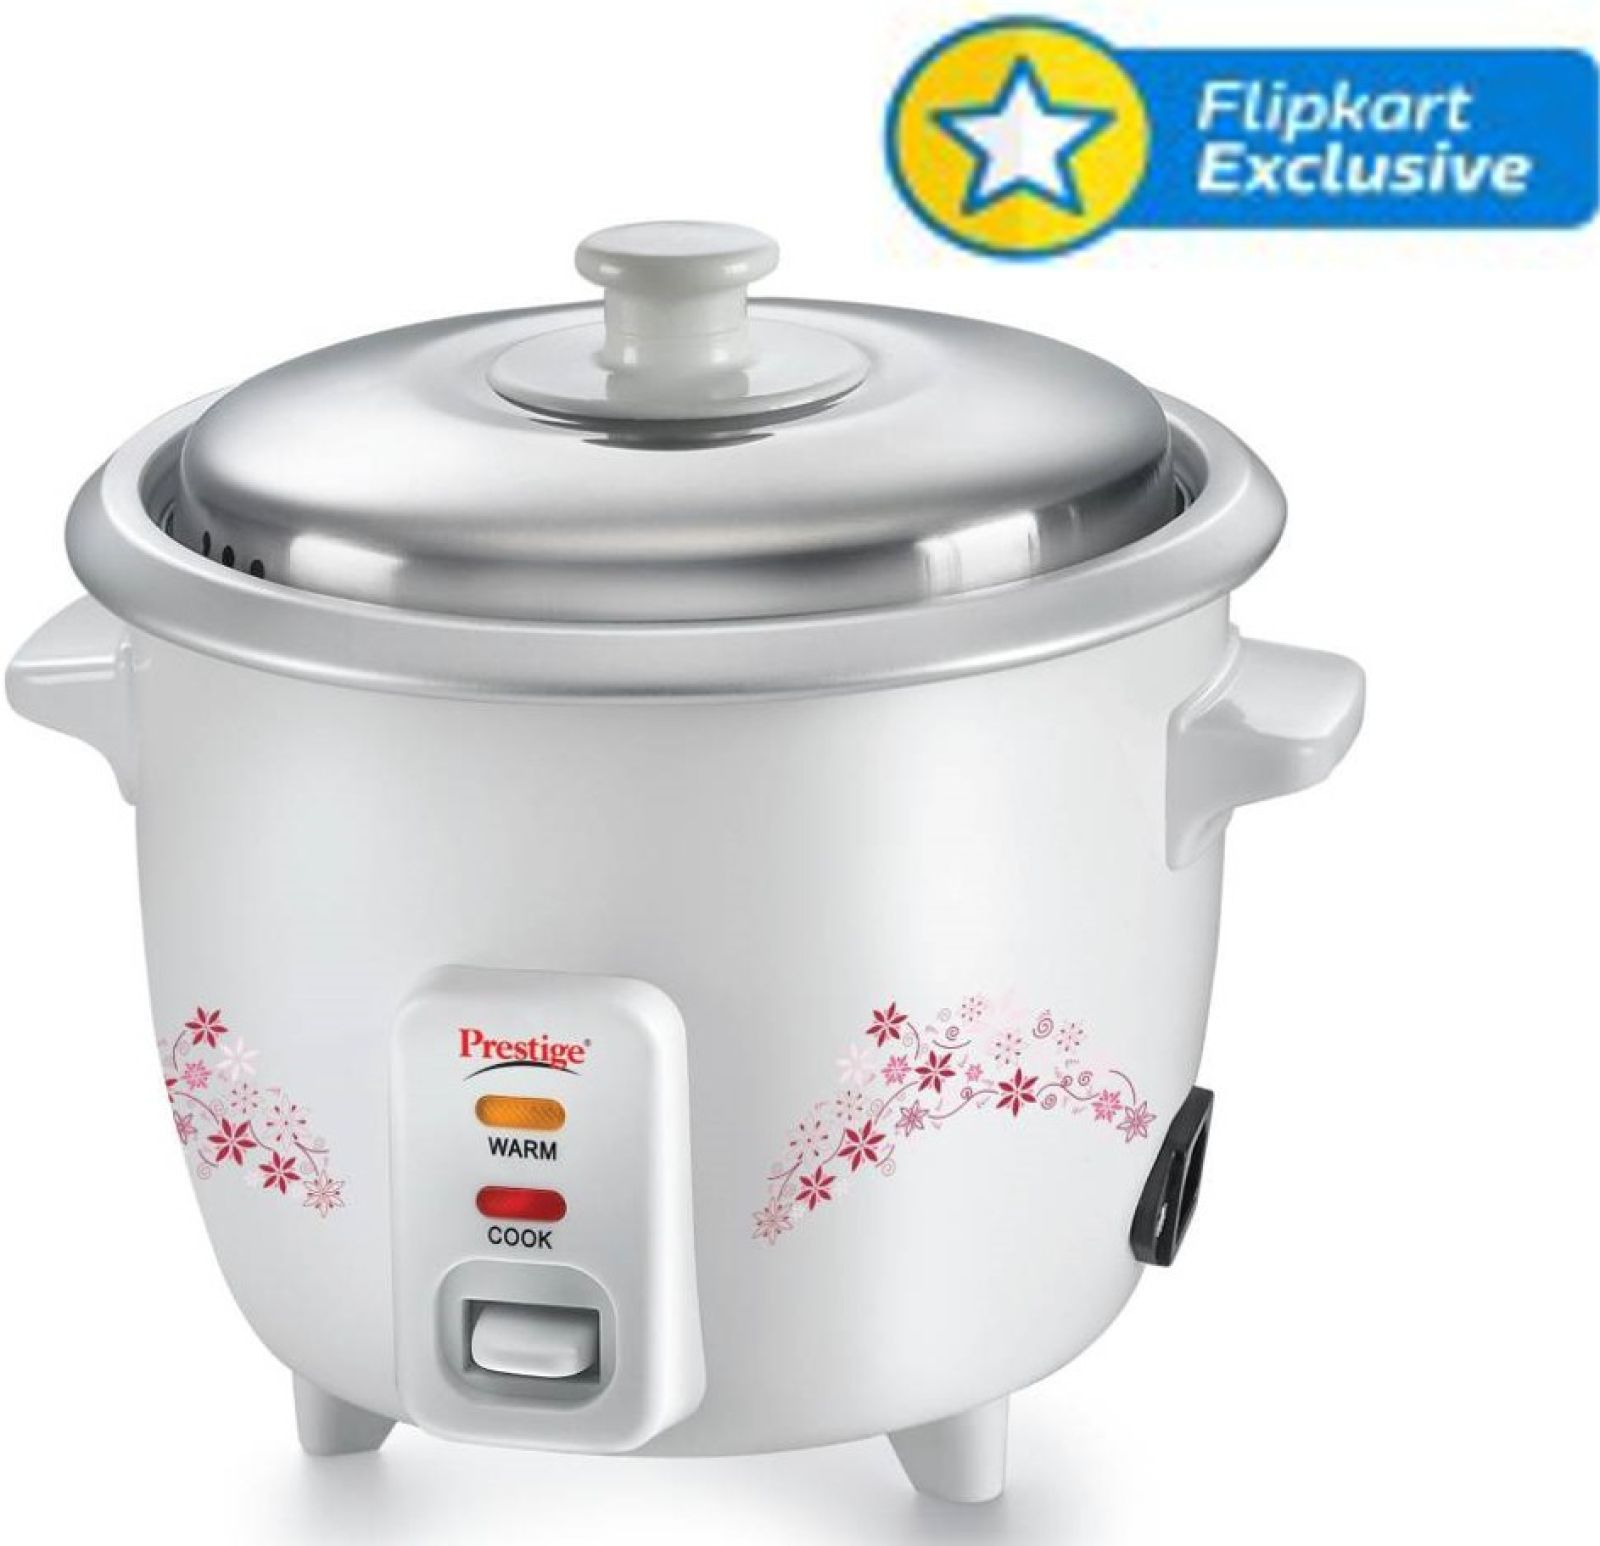 Uncategorized Flipkart Coupons For Kitchen Appliances offer flipkart fashion 50 discount with kotak 811 virtual debit price rs 975